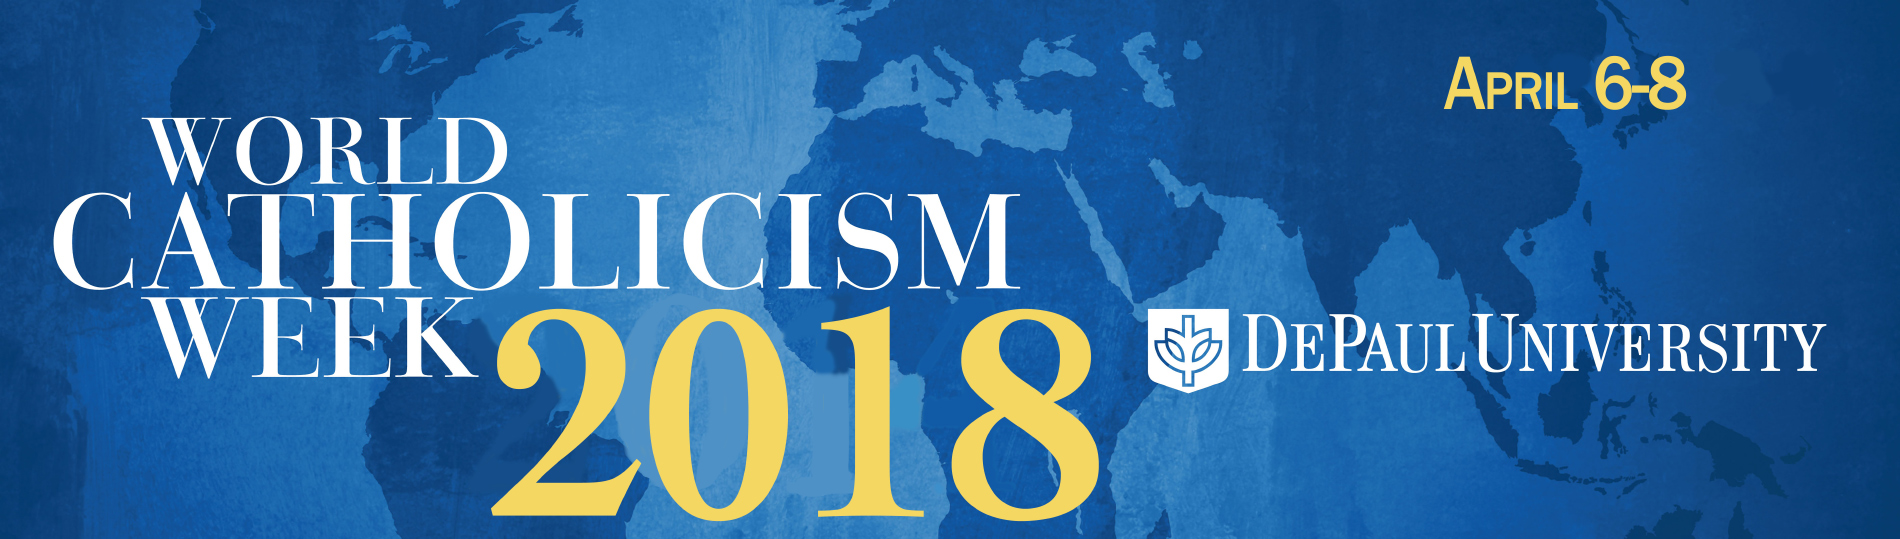 Logo for World Catholicism Week 2018